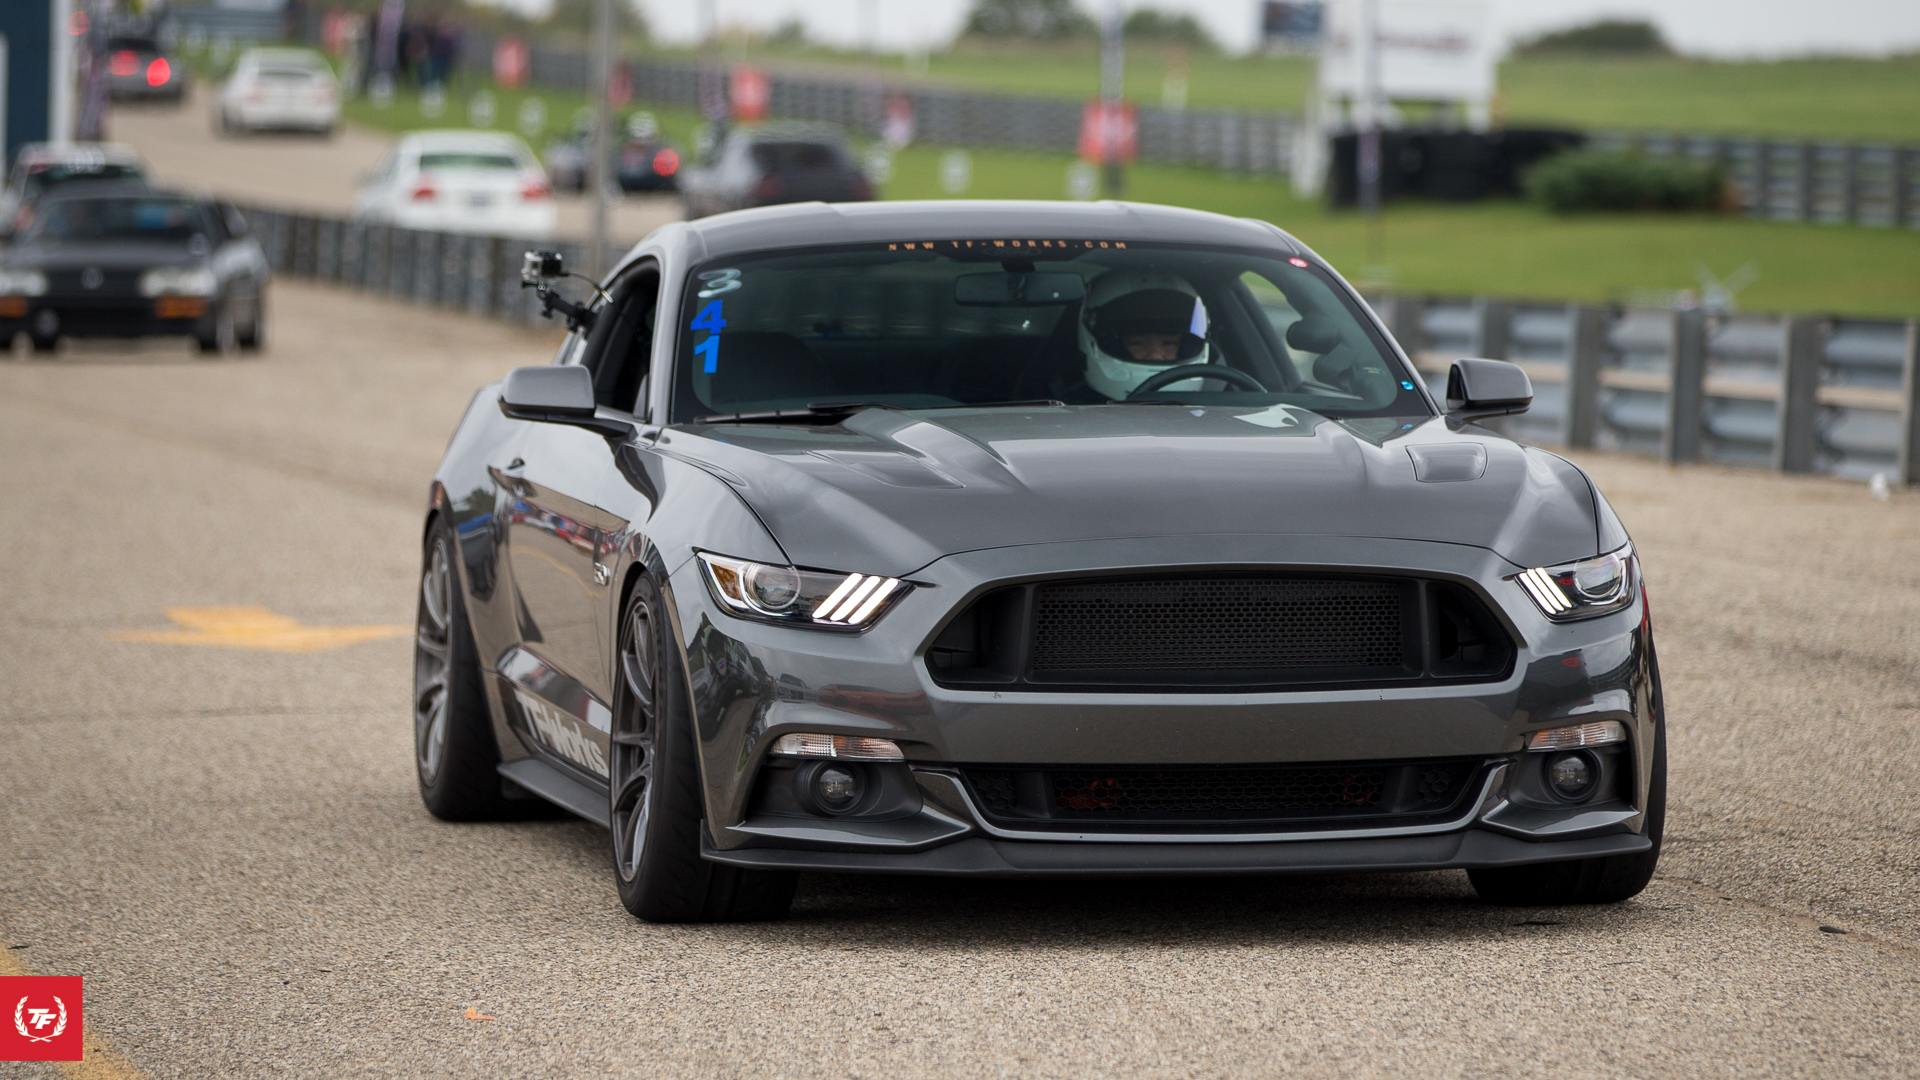 Mustang Kit Car >> Product Review: Whiteline Performance Sway Bars for S550 Mustang - TF-Works Blog